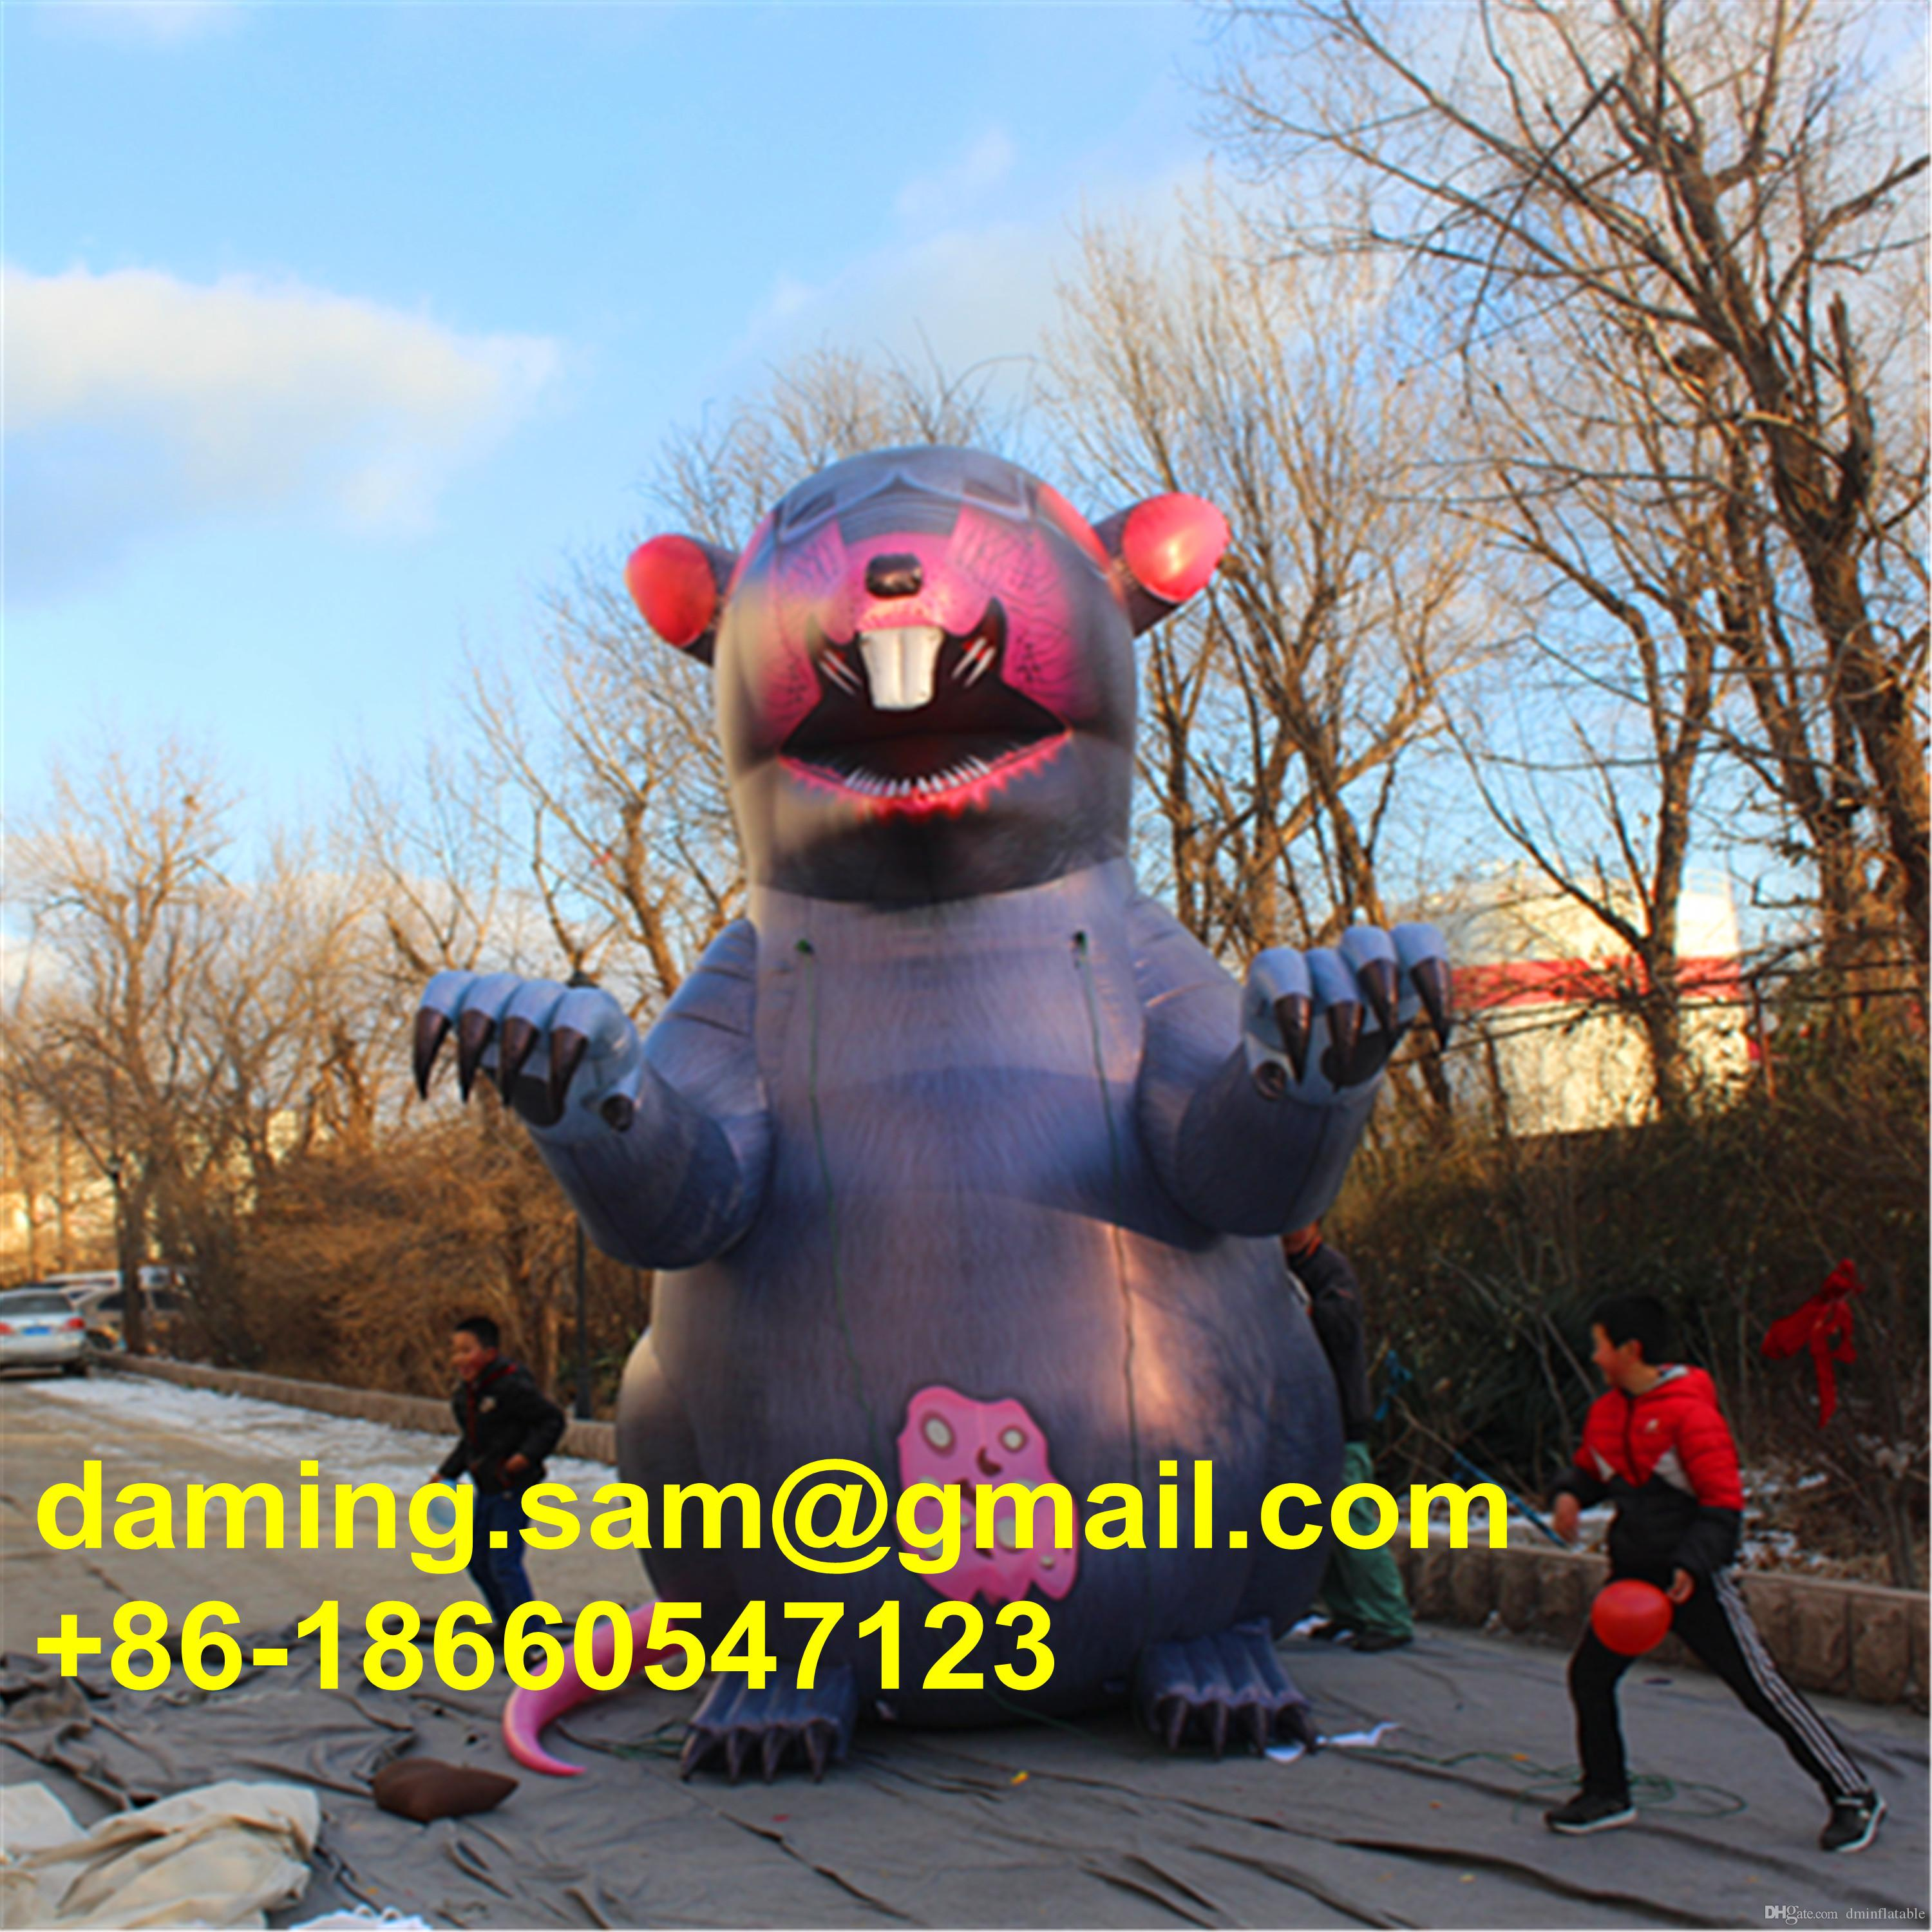 3e263ba9a 2019 Factory Price 4m High Large Giant Customized Inflatable Event  Decoration Advertising Giant Inflatable Mouse From Dminflatable, $640.21 |  DHgate.Com